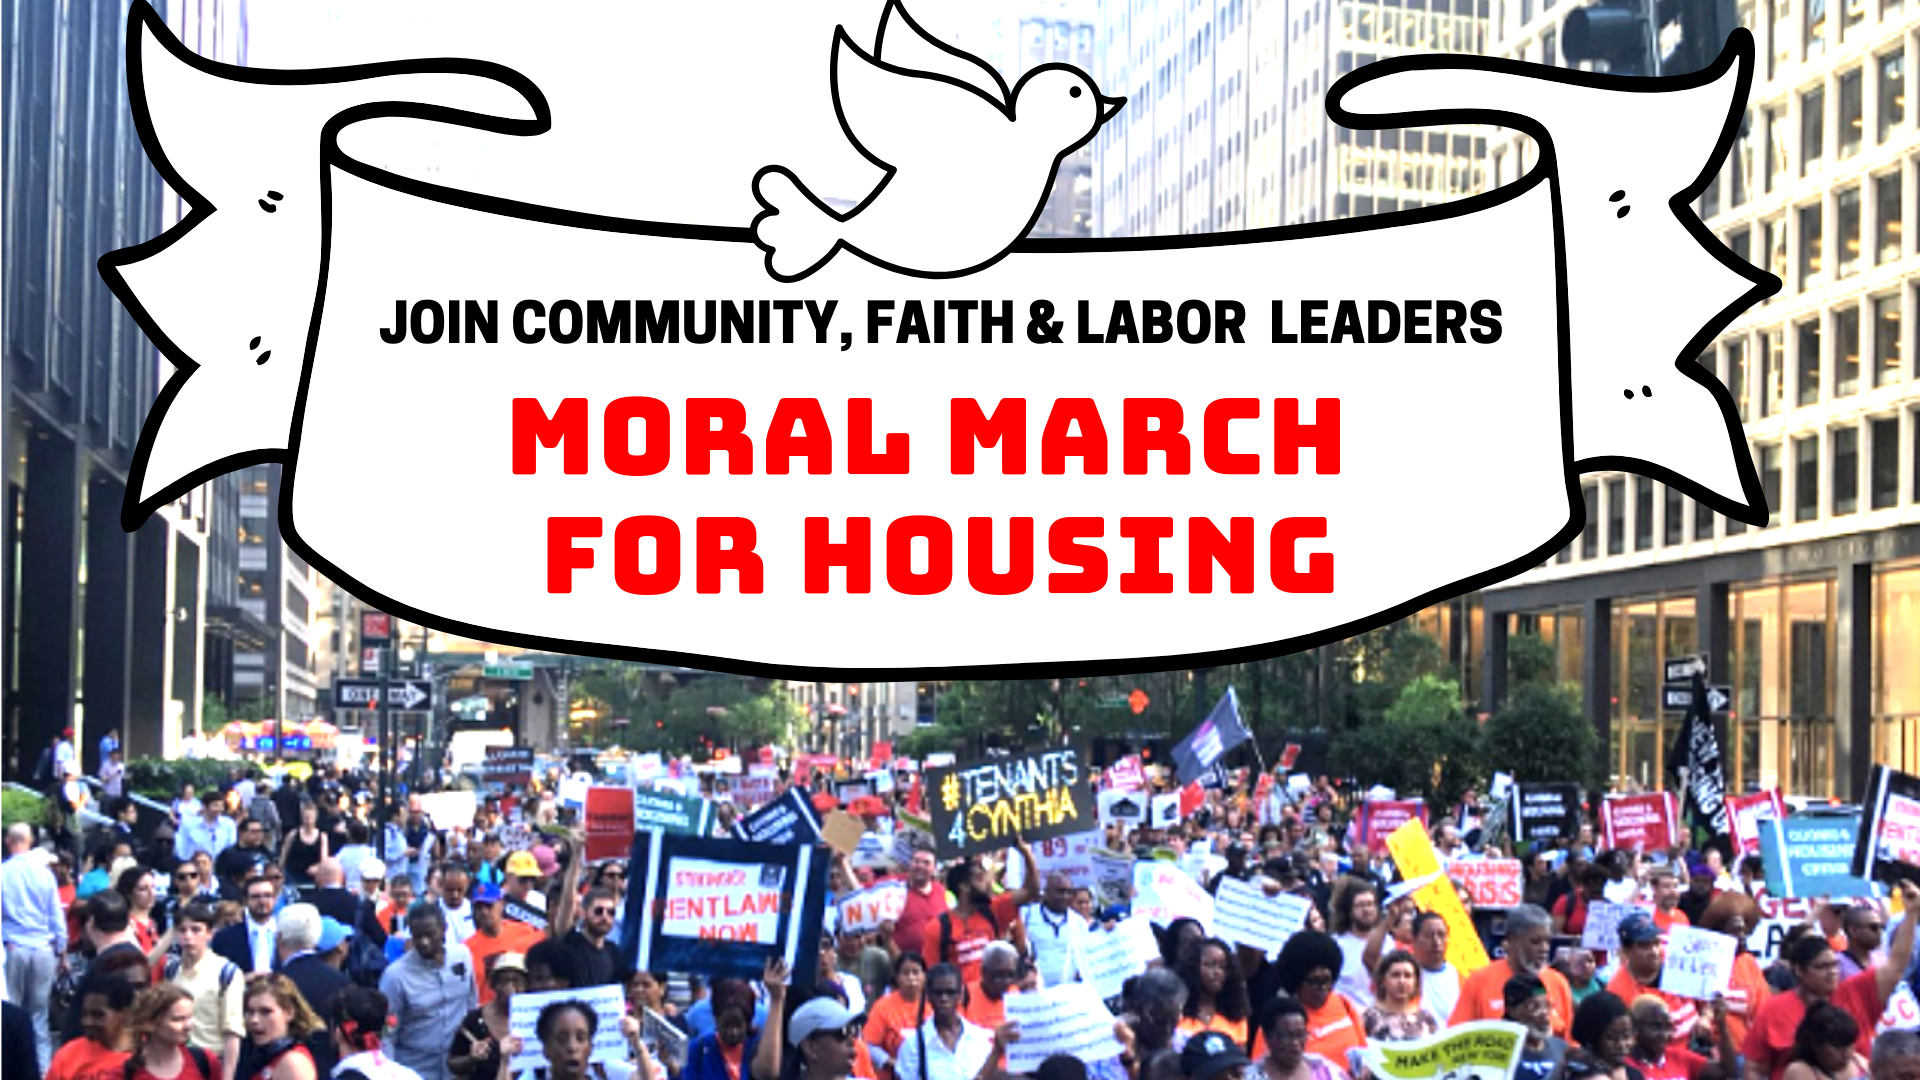 community-met-council-moral-housing-march-st-francis-de-sales-catholic-church-new-york.png